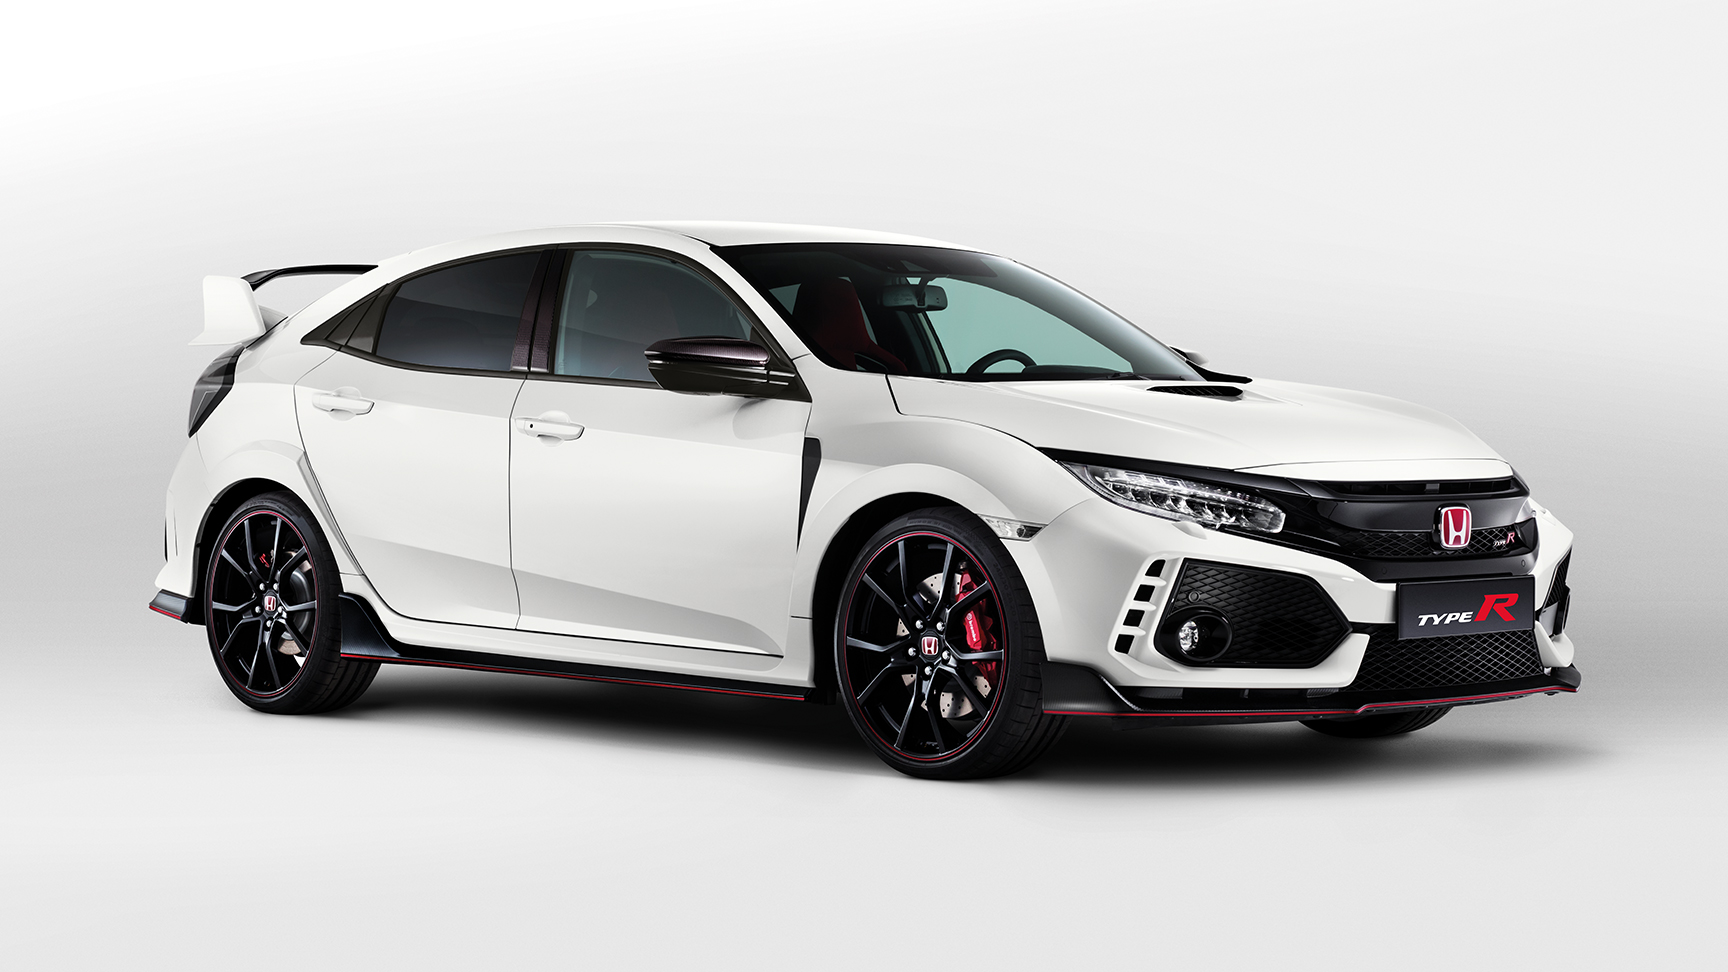 Honda civic type r clipart banner royalty free Ponthir Road Service Station :: Civic Type-R banner royalty free